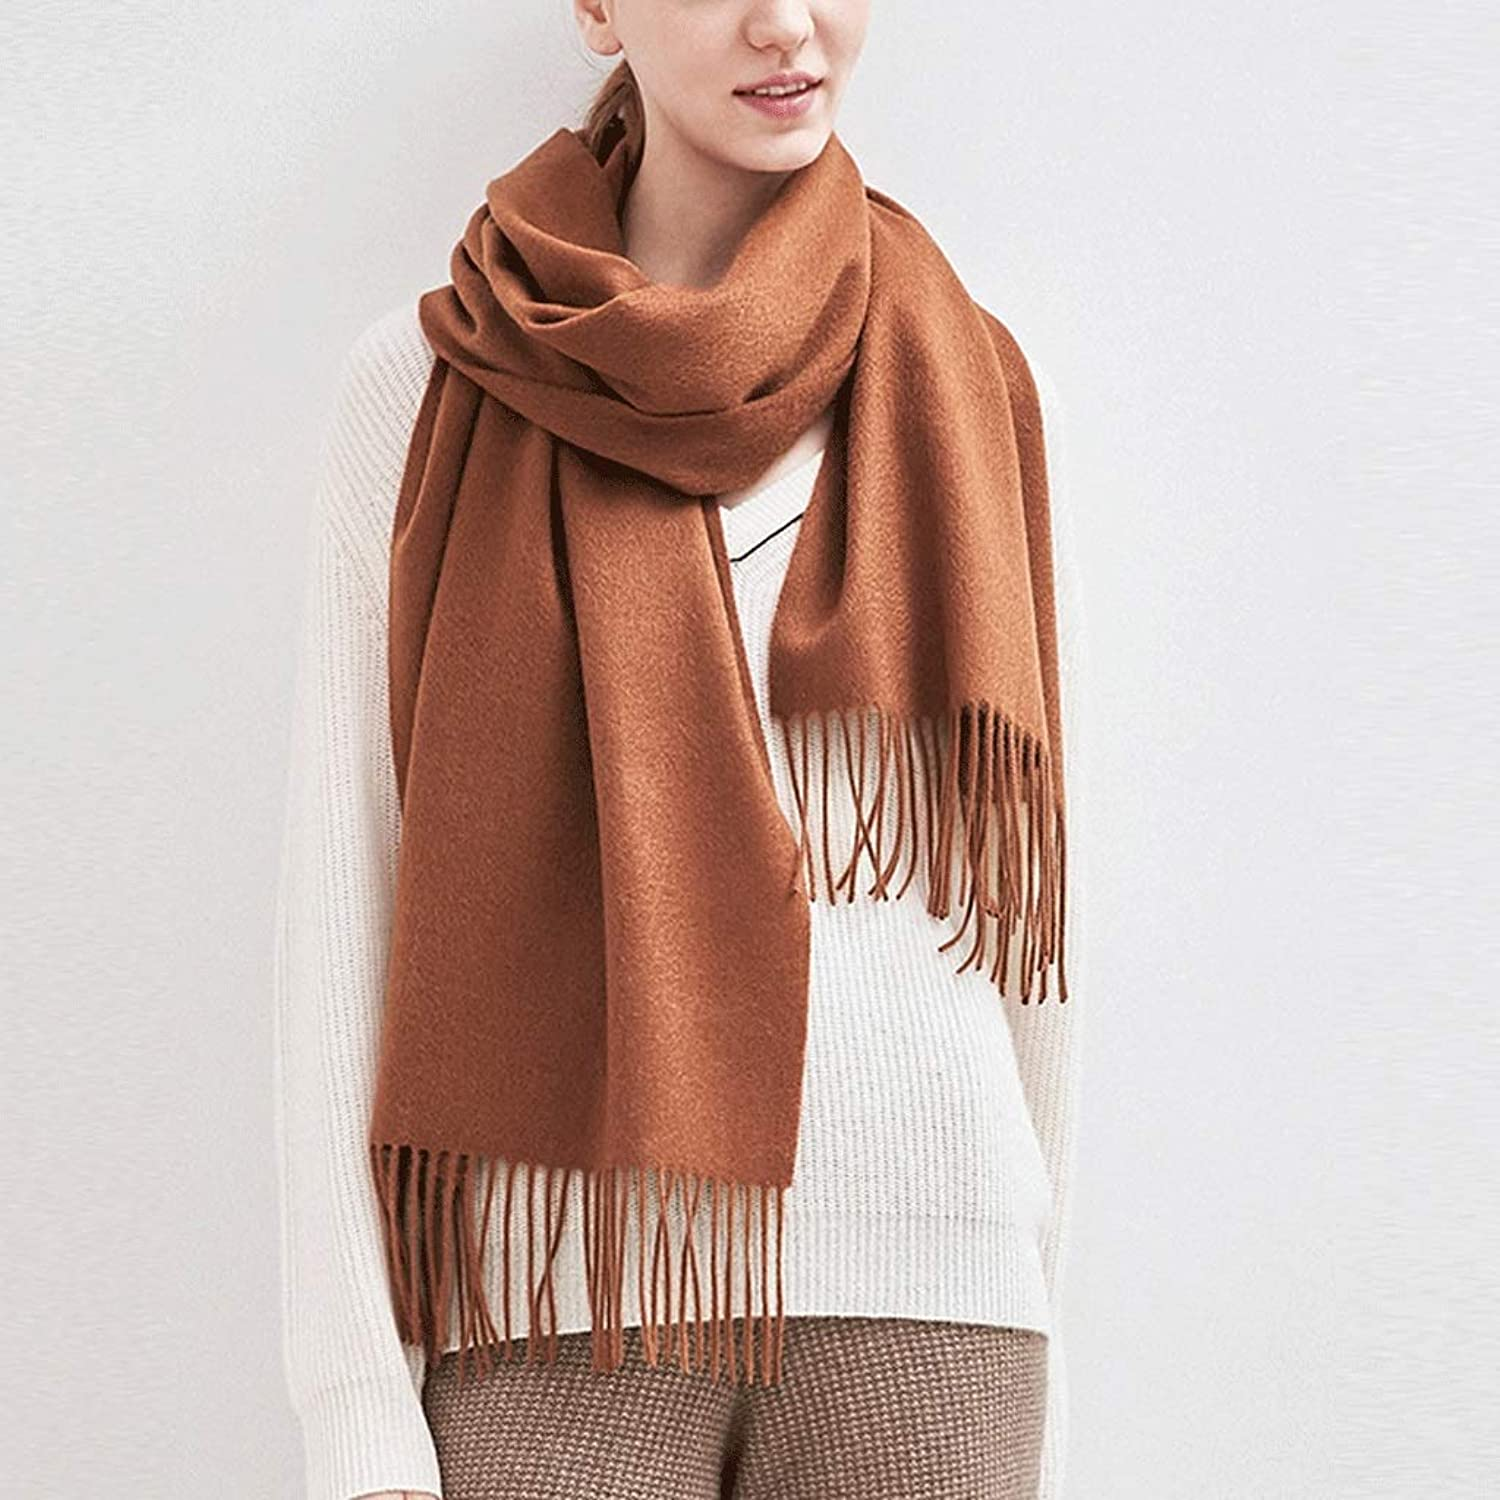 CCF Scarf Ms Keep Warm Cold Resistant Big Shawl Dual Use Autumn Winter 200×40cm V (color   Caramel)